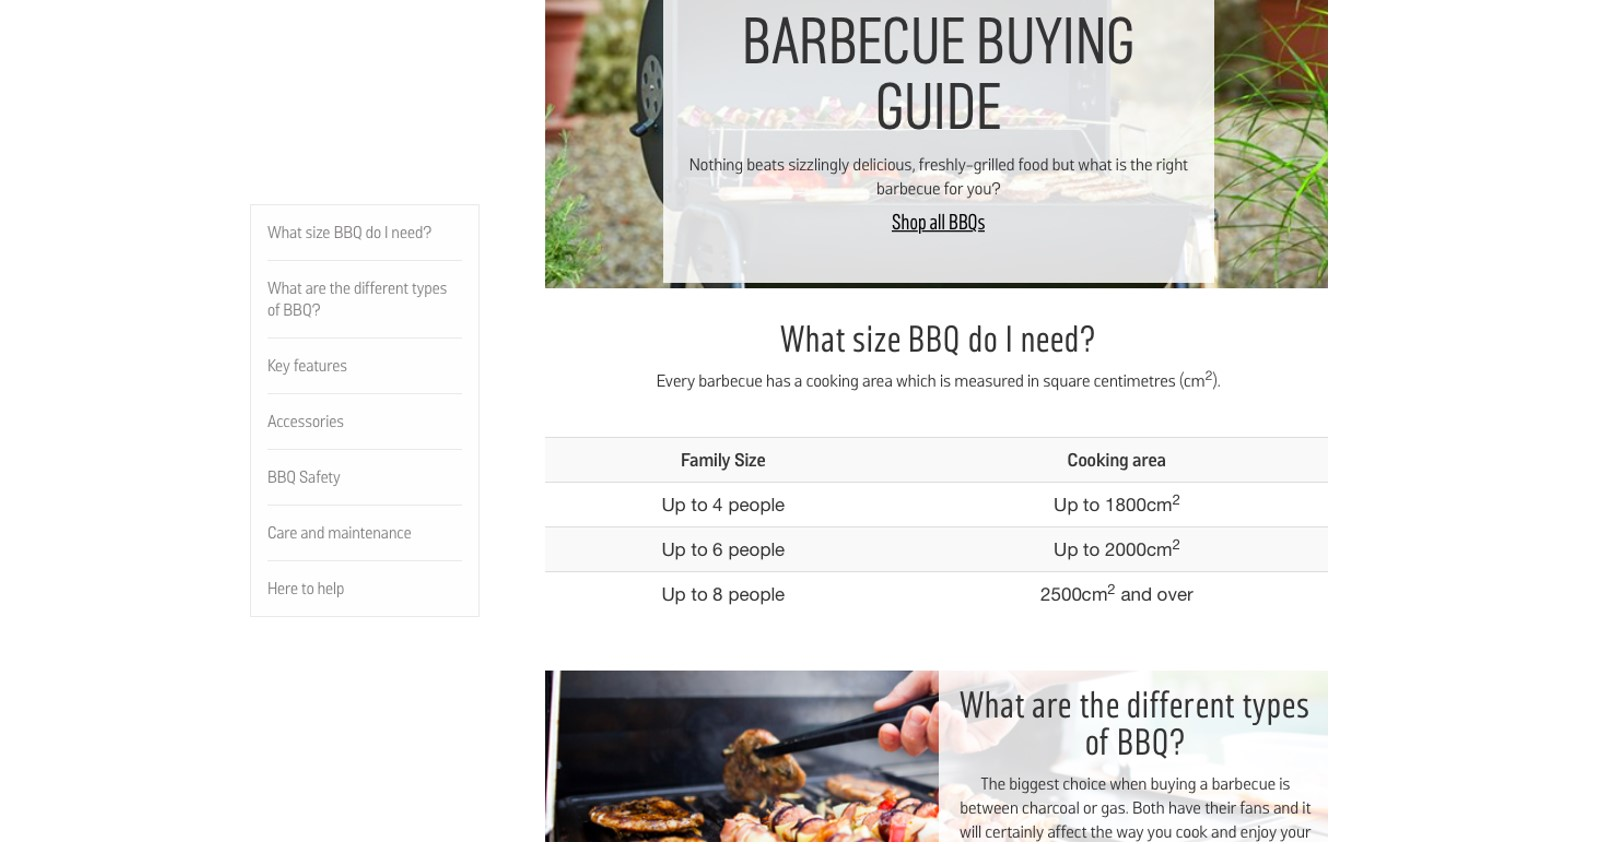 BBQ buying guide webpage